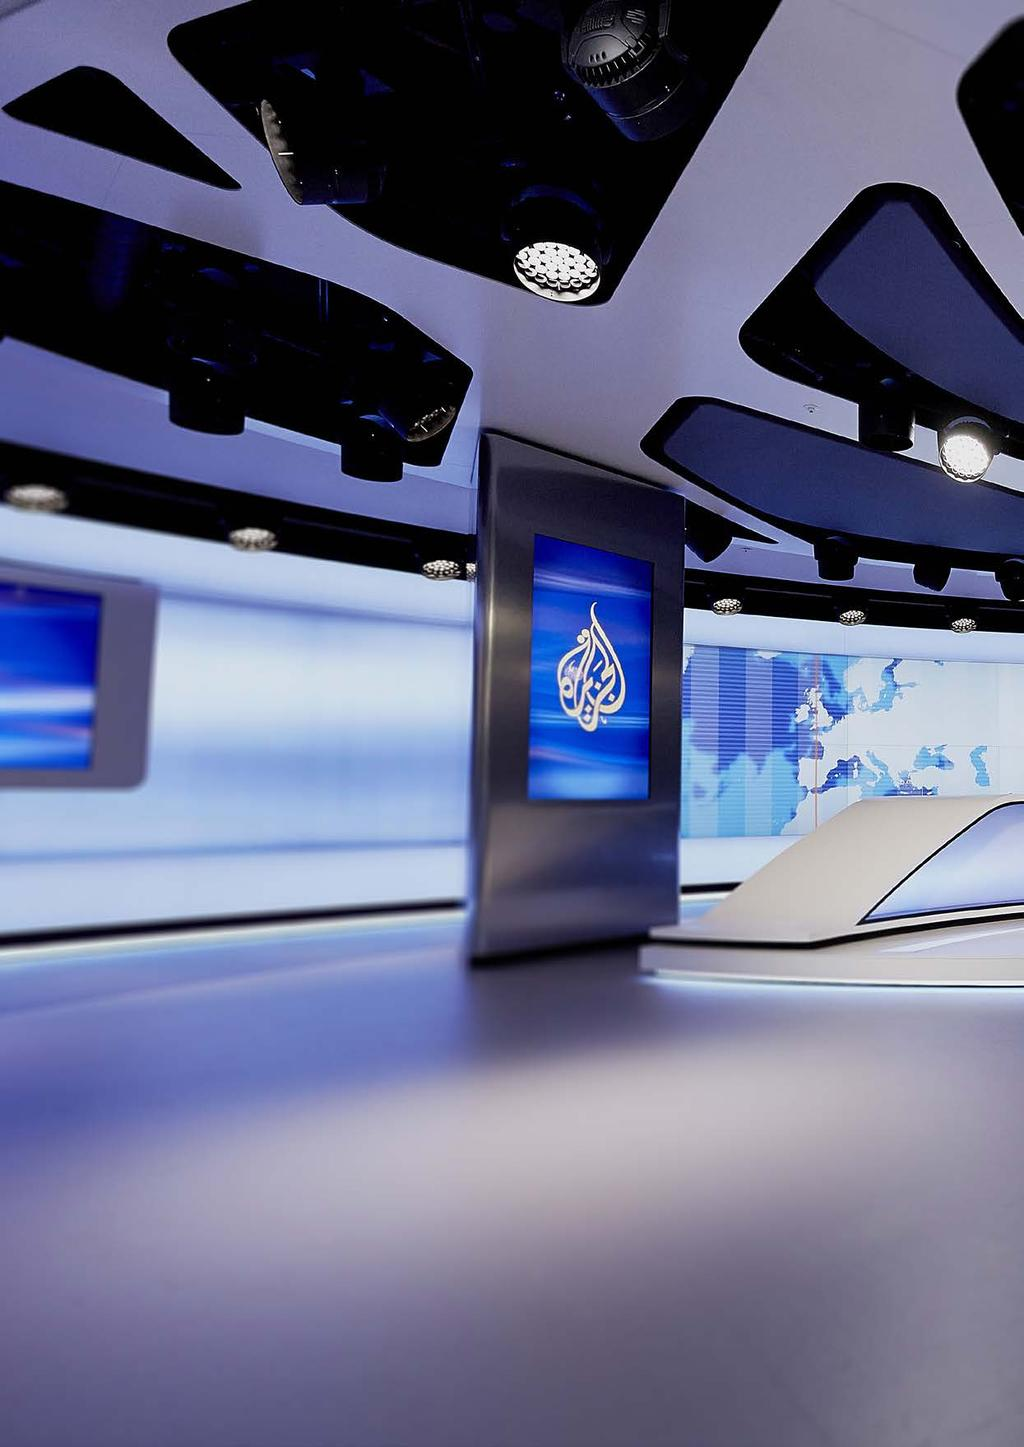 Just a few months after the opening of the studio, Veech x Veech received wide spread recognition for the project Al Jazeera News Studio and Newsroom : Silver award from the International Design